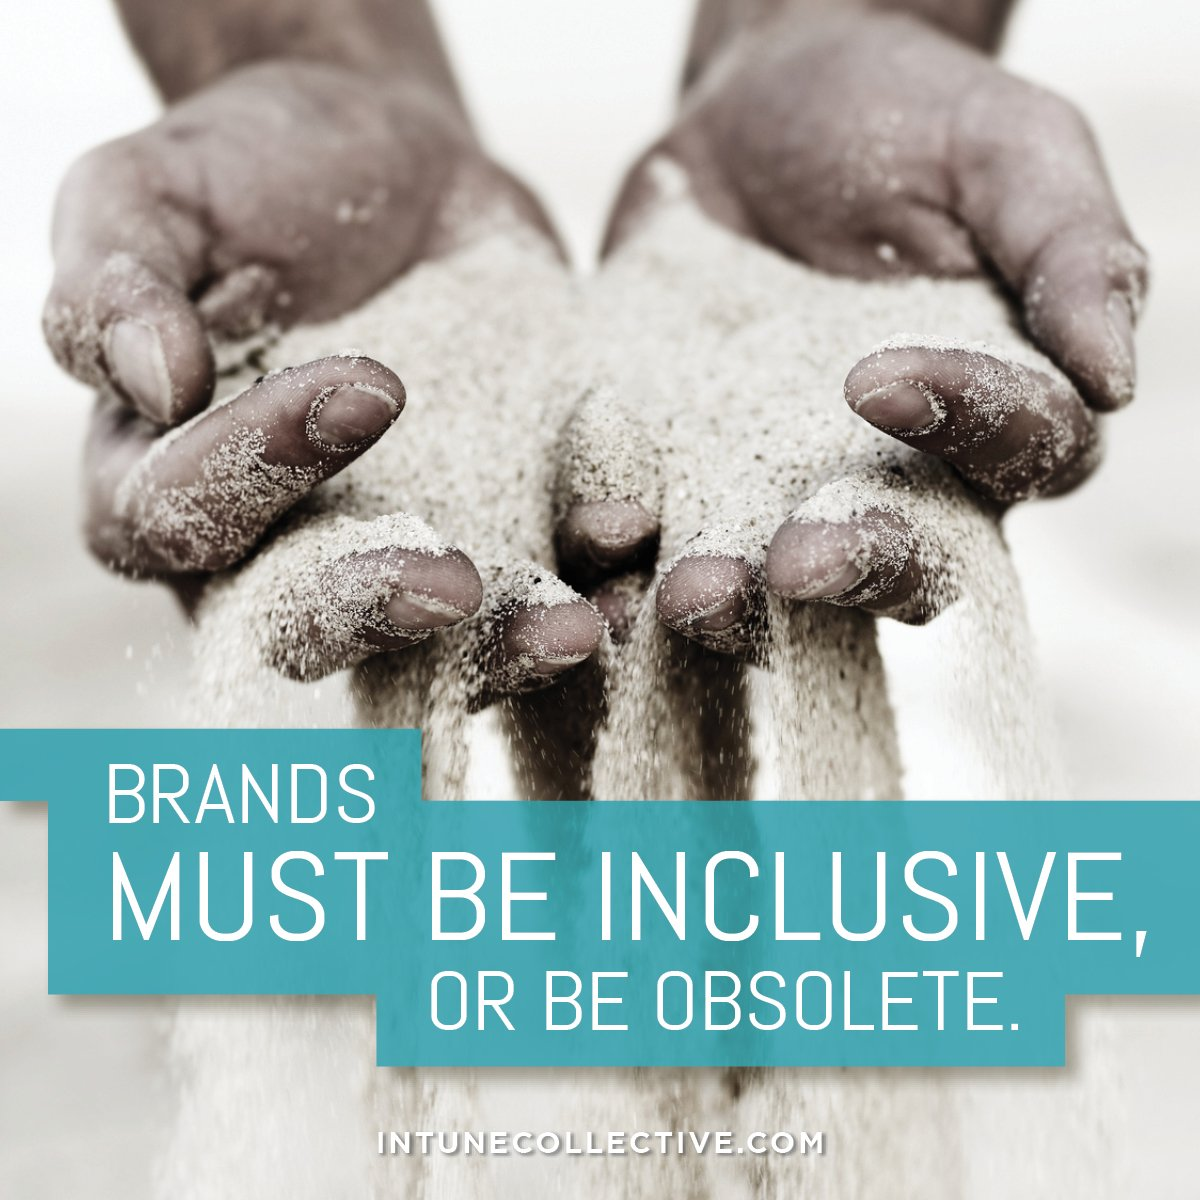 The Power of Branding: Our Inside-Out Approach